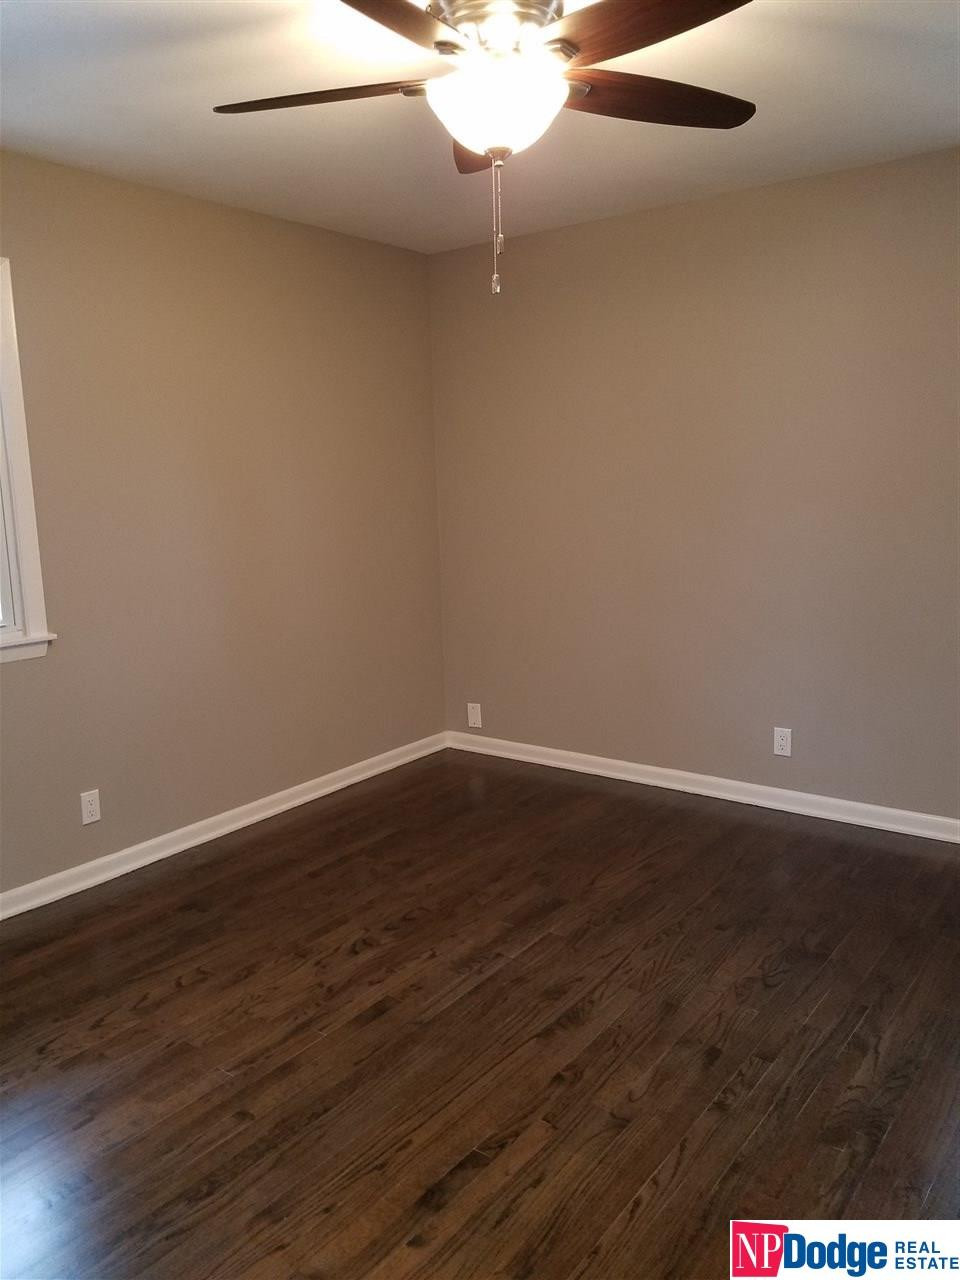 hardwood floor refinishing omaha ne of 5672 s 122 street omaha ne 68137 berkshire hathaway home within 5672 s 122 street omaha ne 68137